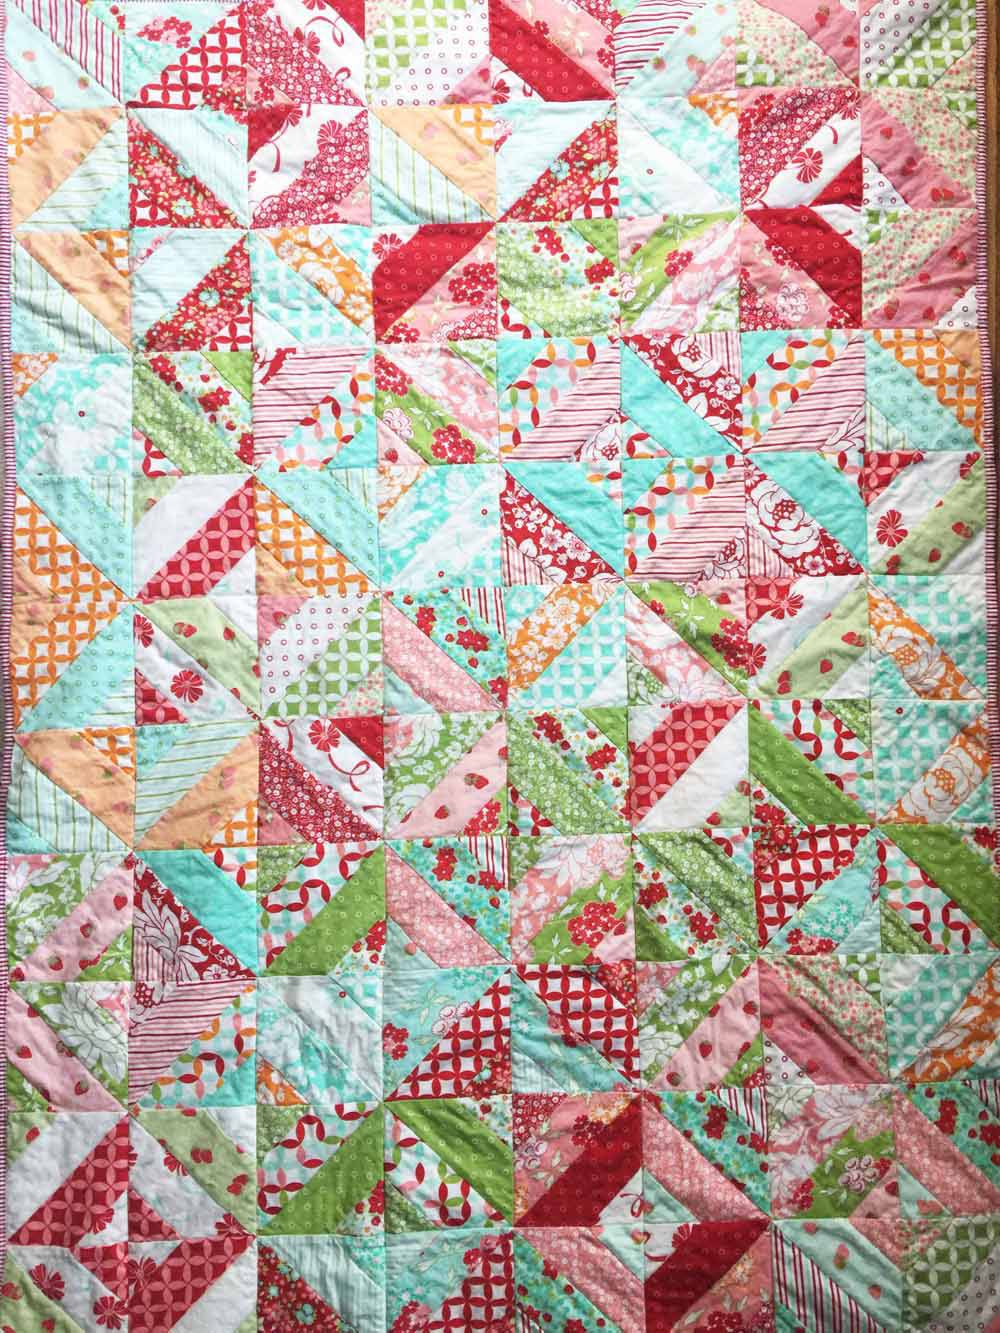 washed wrinkly the garden trellis lap quilt jelly roll quilts by mostlySewing.com